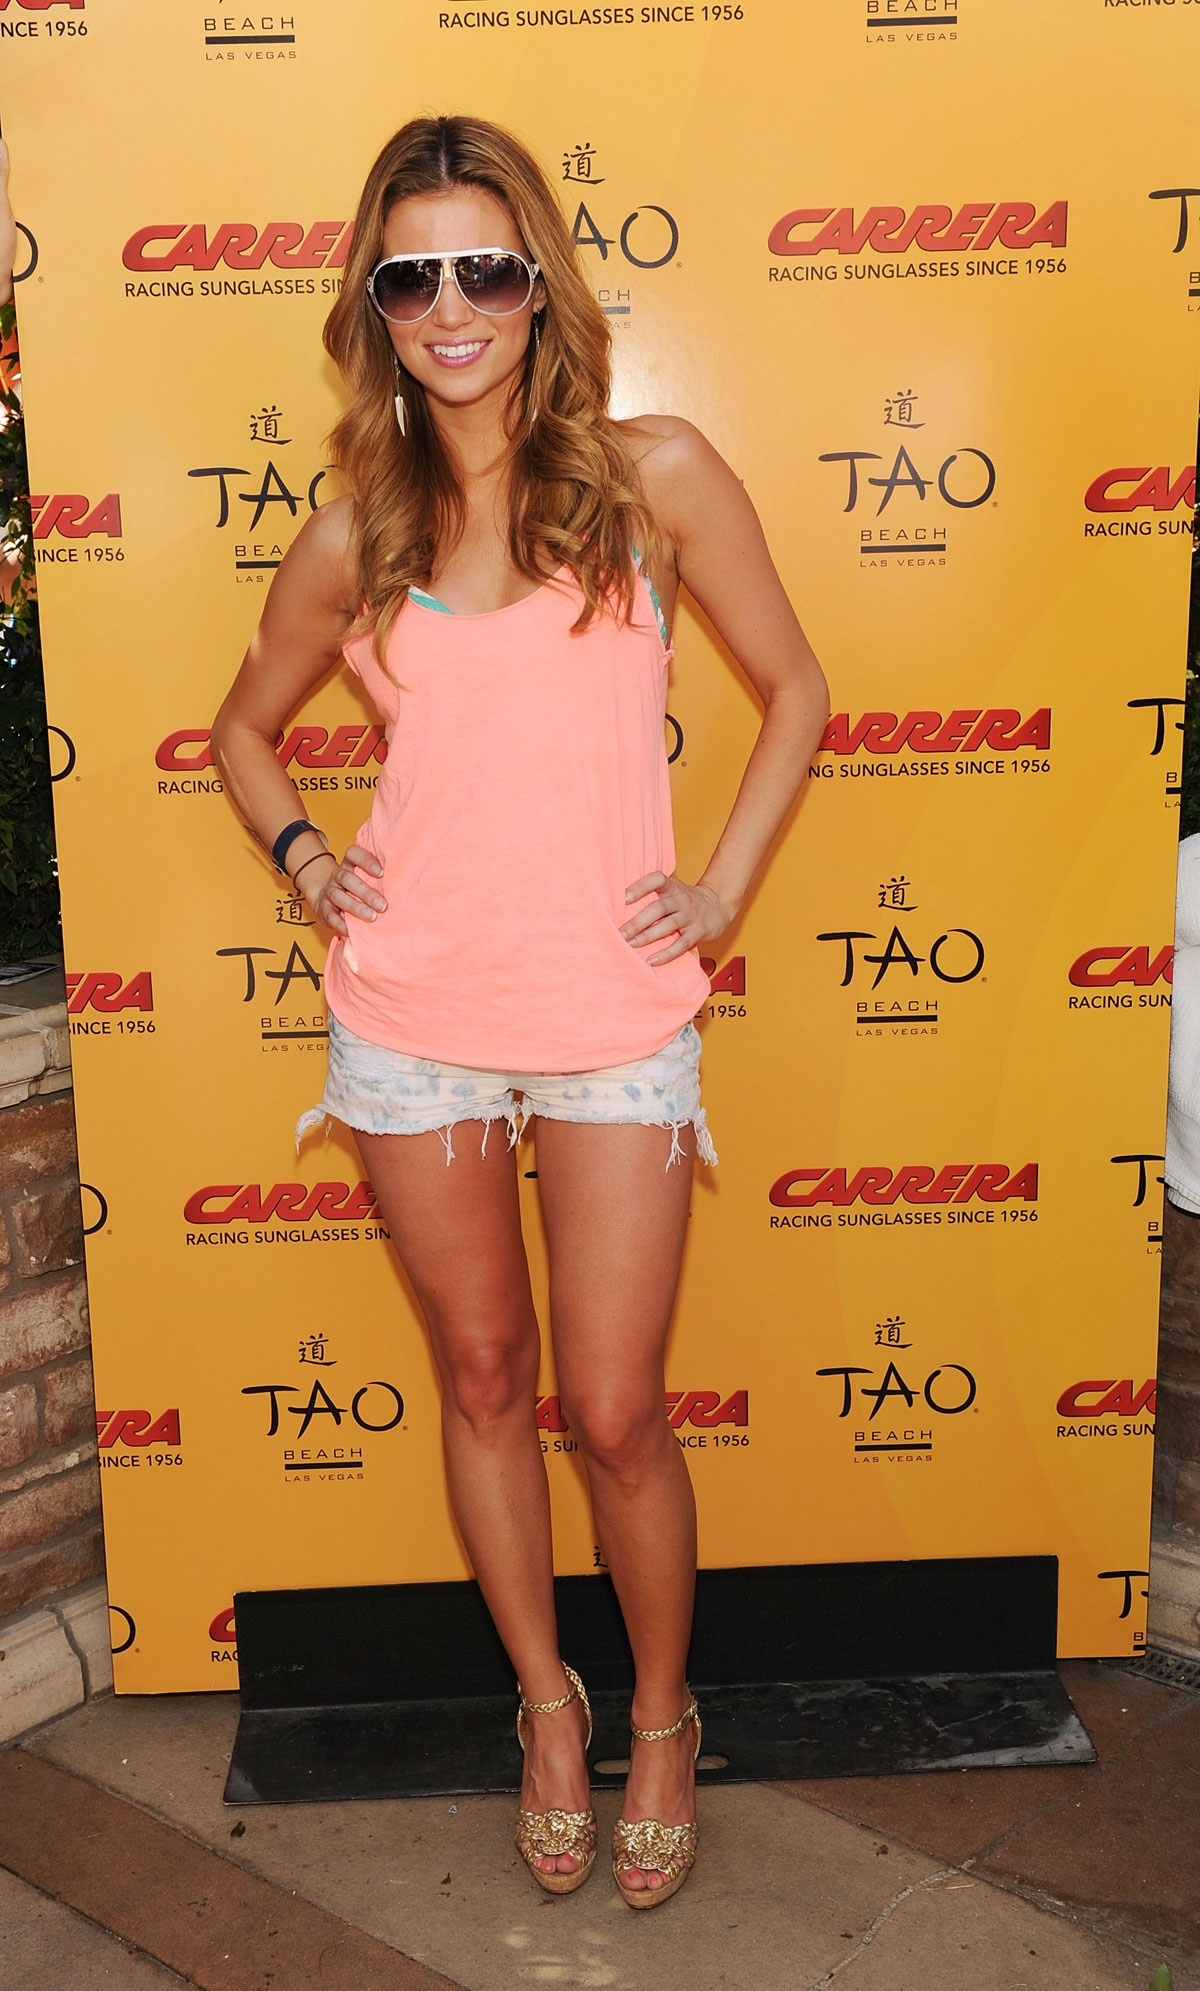 Amber Lancaster In Bikini Top At Carrera Escape Party At Tao Beach In Las Vegas Bikini